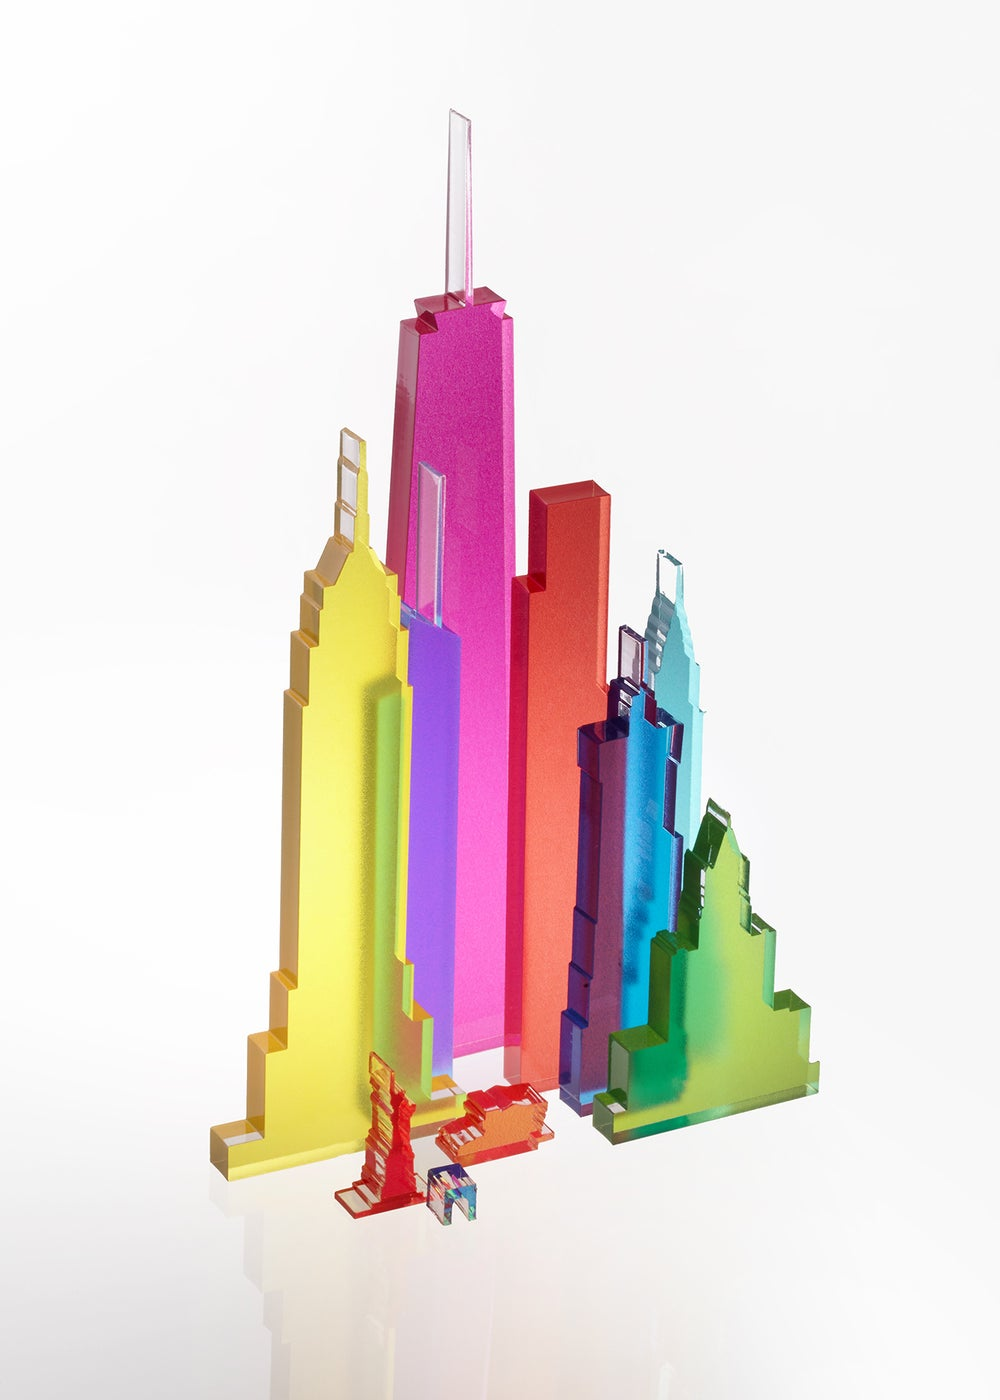 Image of New modular NYC light sculpture